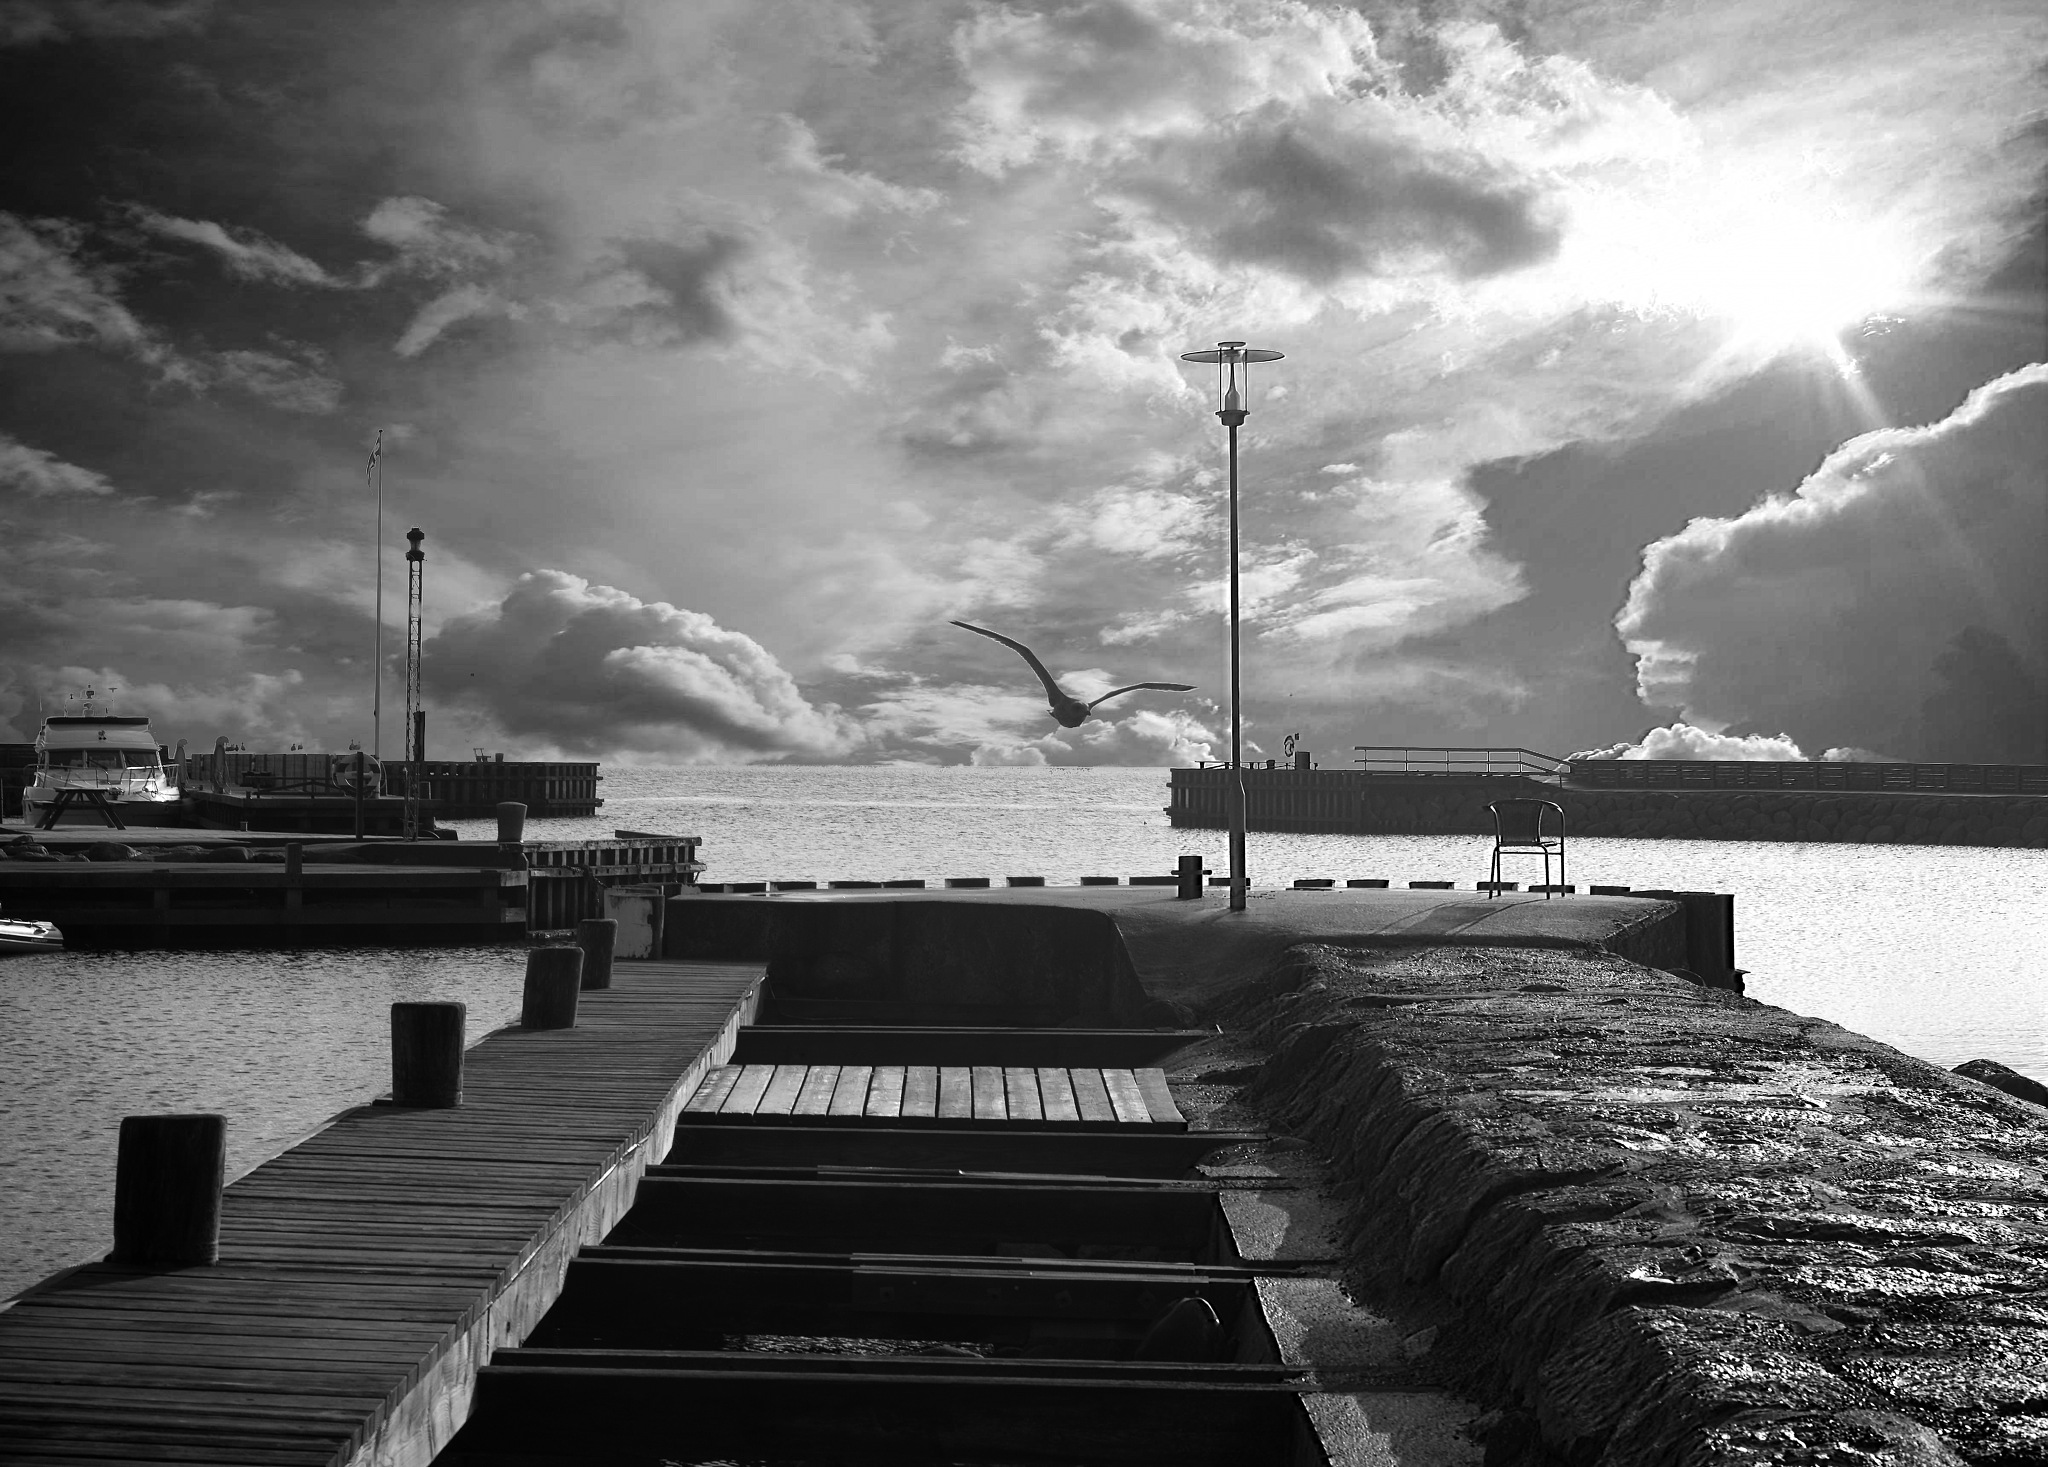 Bird at the harbour by Black cat photography